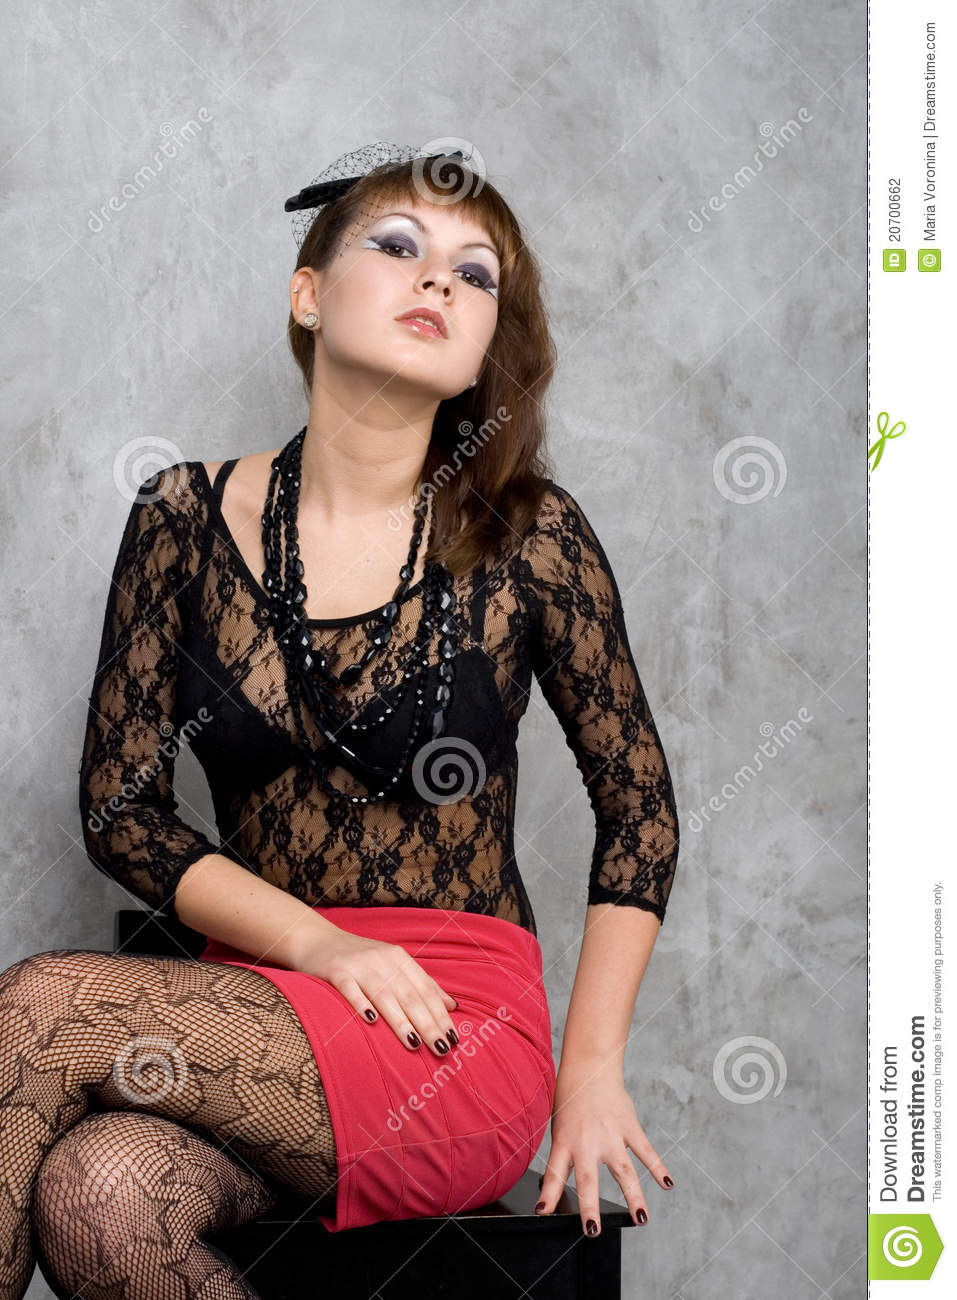 Cute Gothic Girl Stock Photo Image Of Outfit Mesh